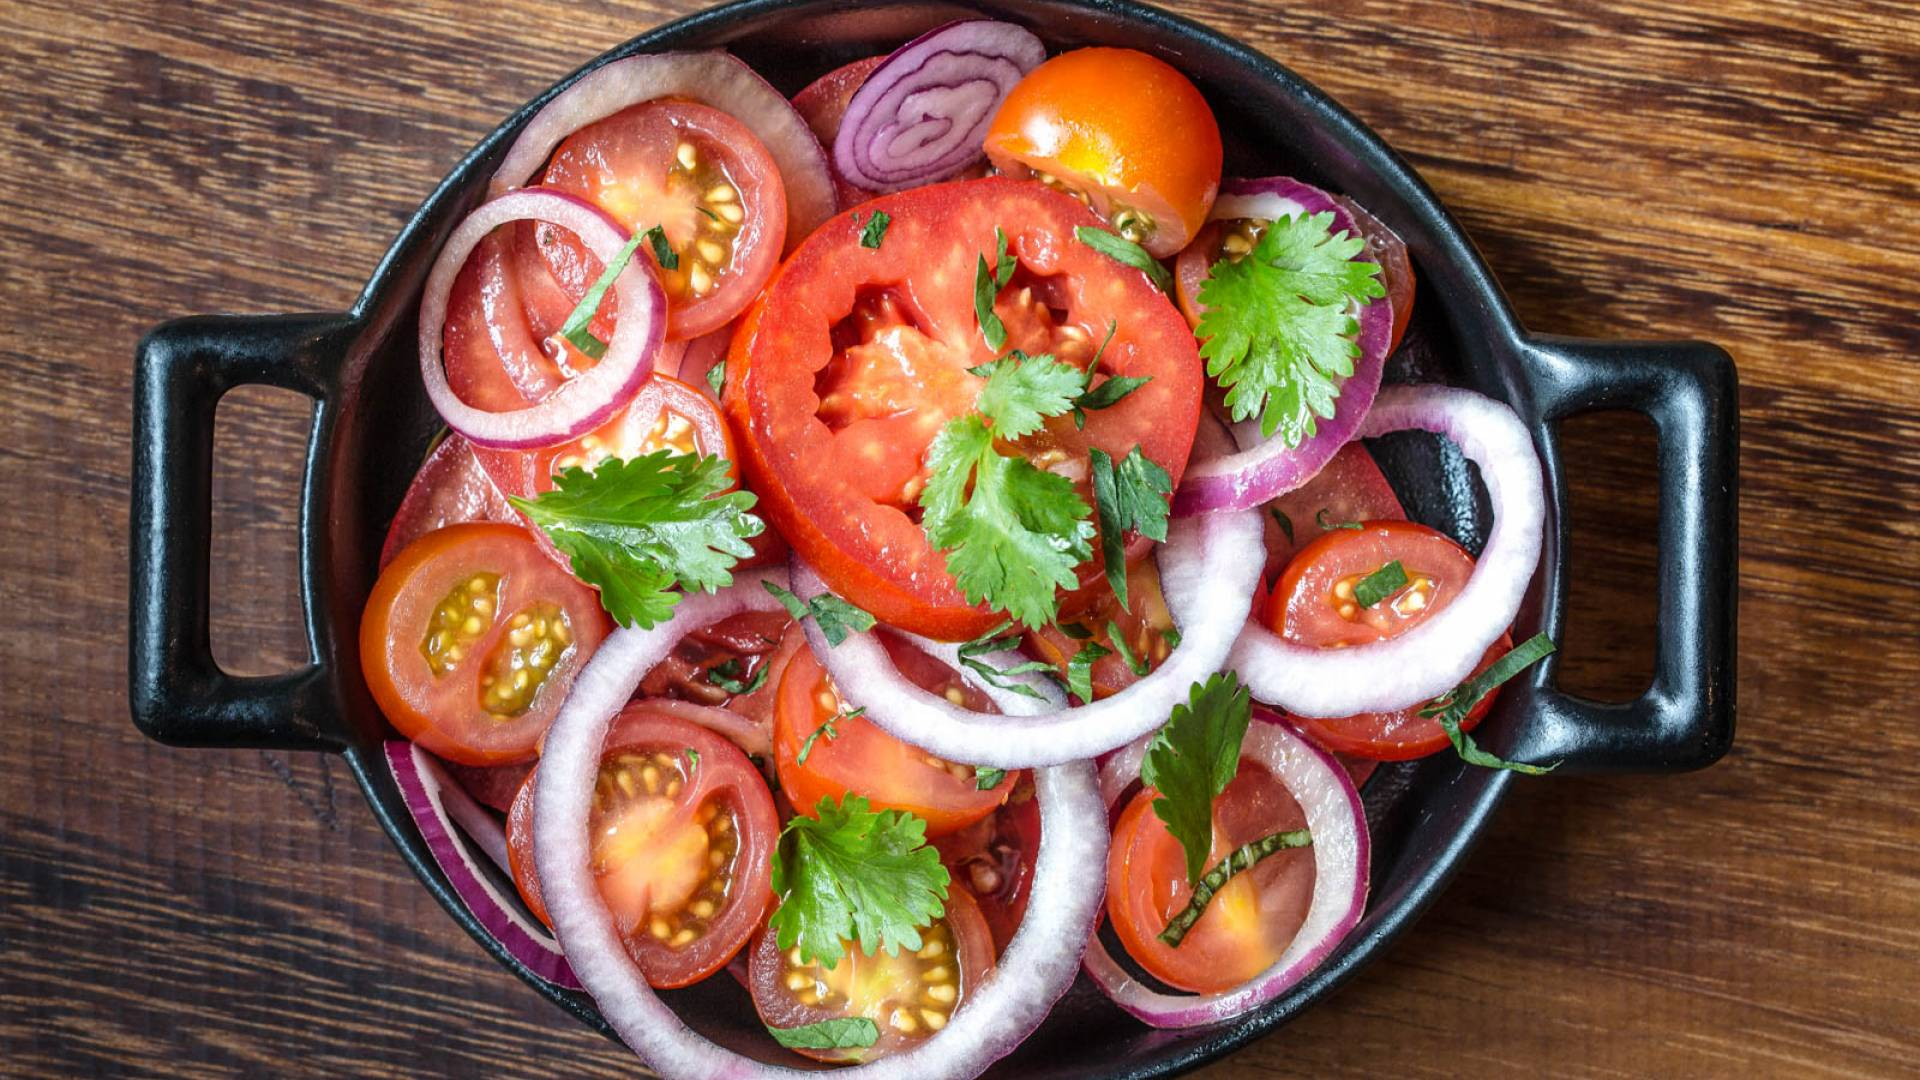 12 MGMF Tomato and Onion Salad